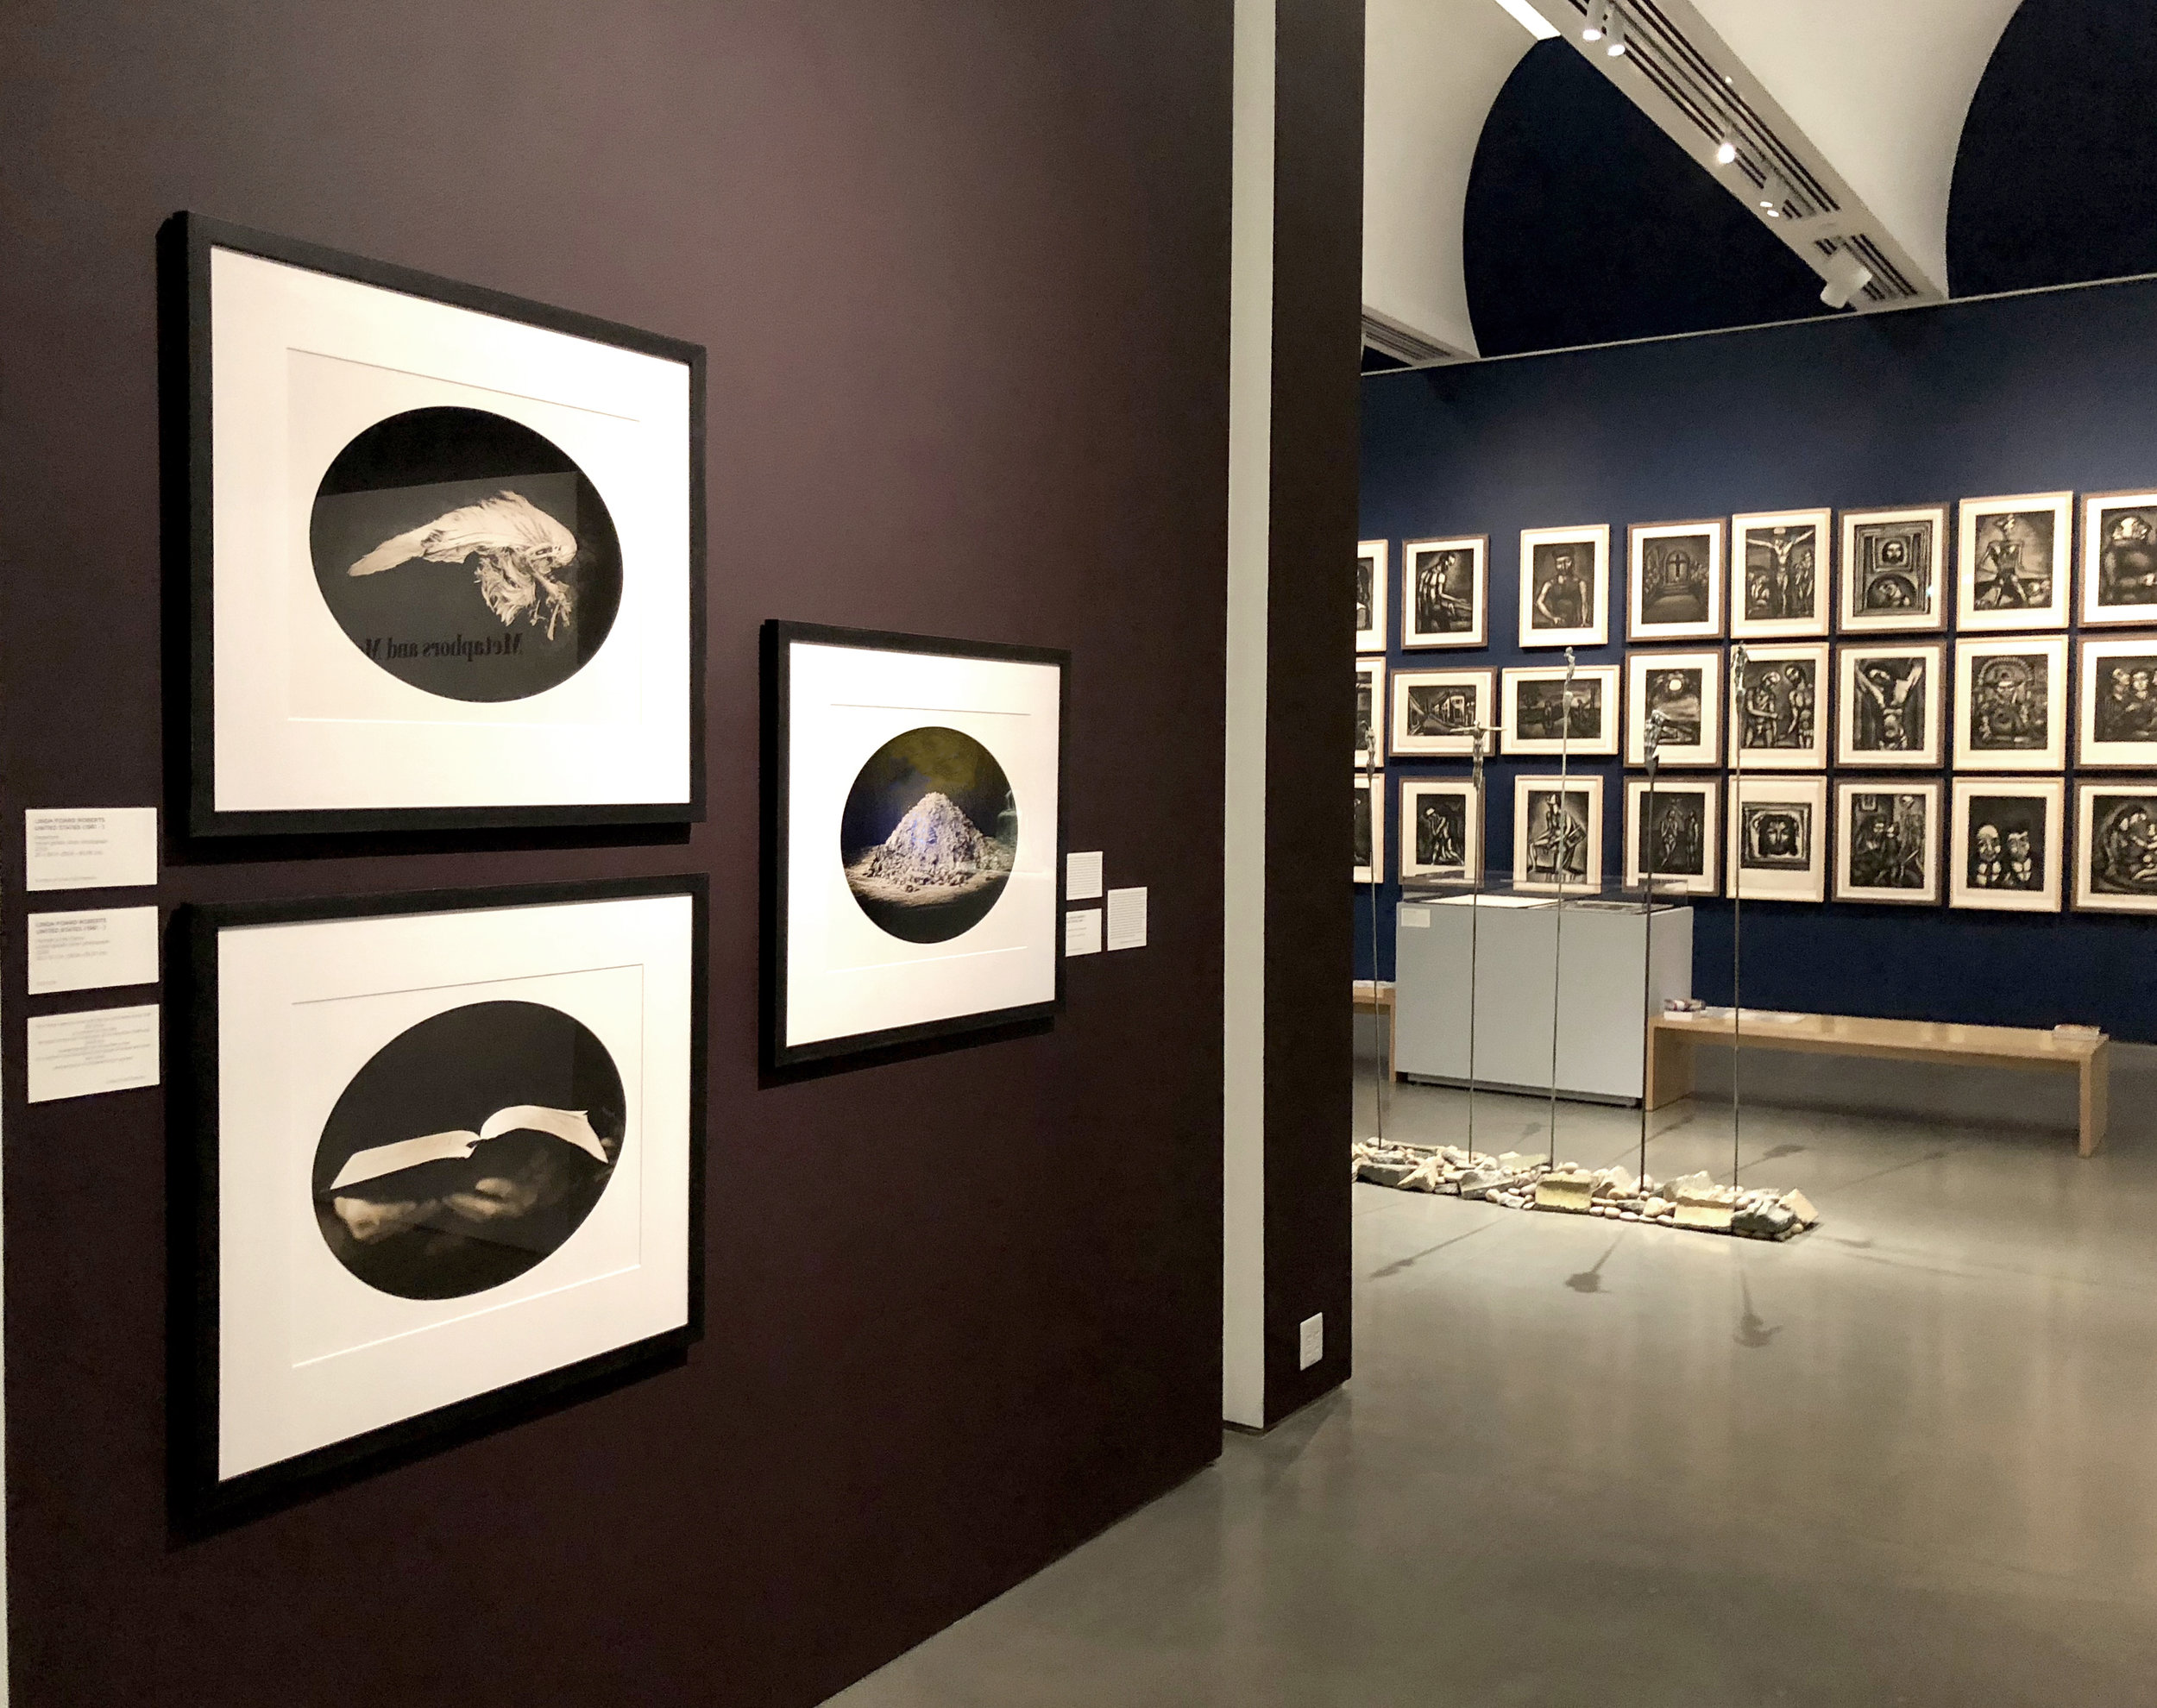 BECHTLER MUSEUM OF ART  WRESTLING THE ANGEL EXHIBITION  WITH ANDY WARHOL, MARC CHAGALL, GEORGES ROUAULT, JEAN TINGUELY AND OTHERS, 2018